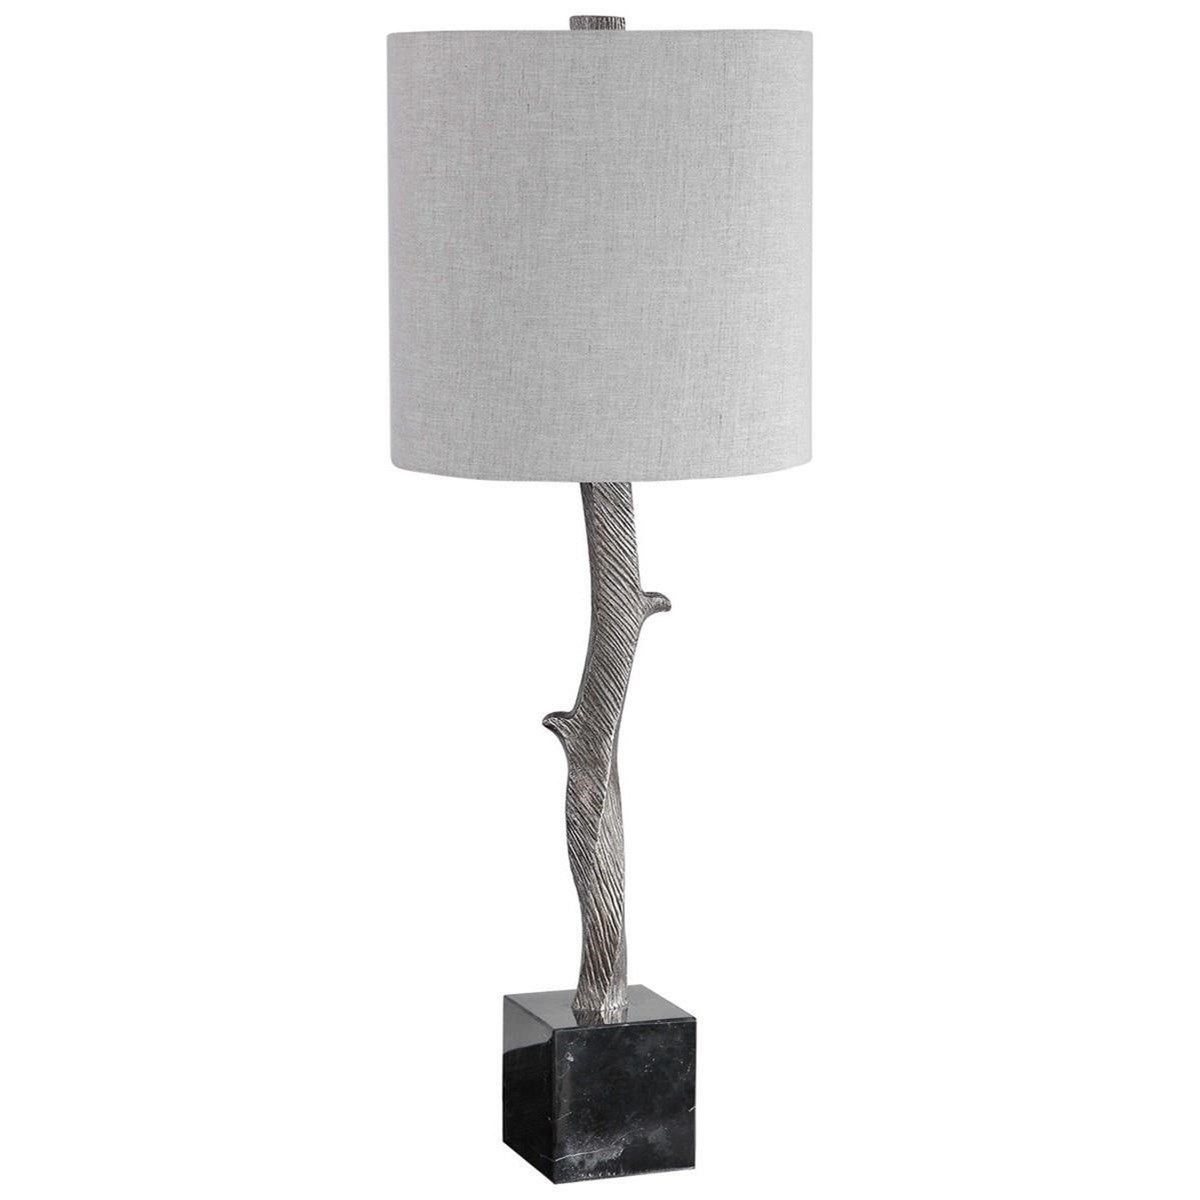 Accent Lamps Iver Branch Accent Lamp by Uttermost at Sprintz Furniture